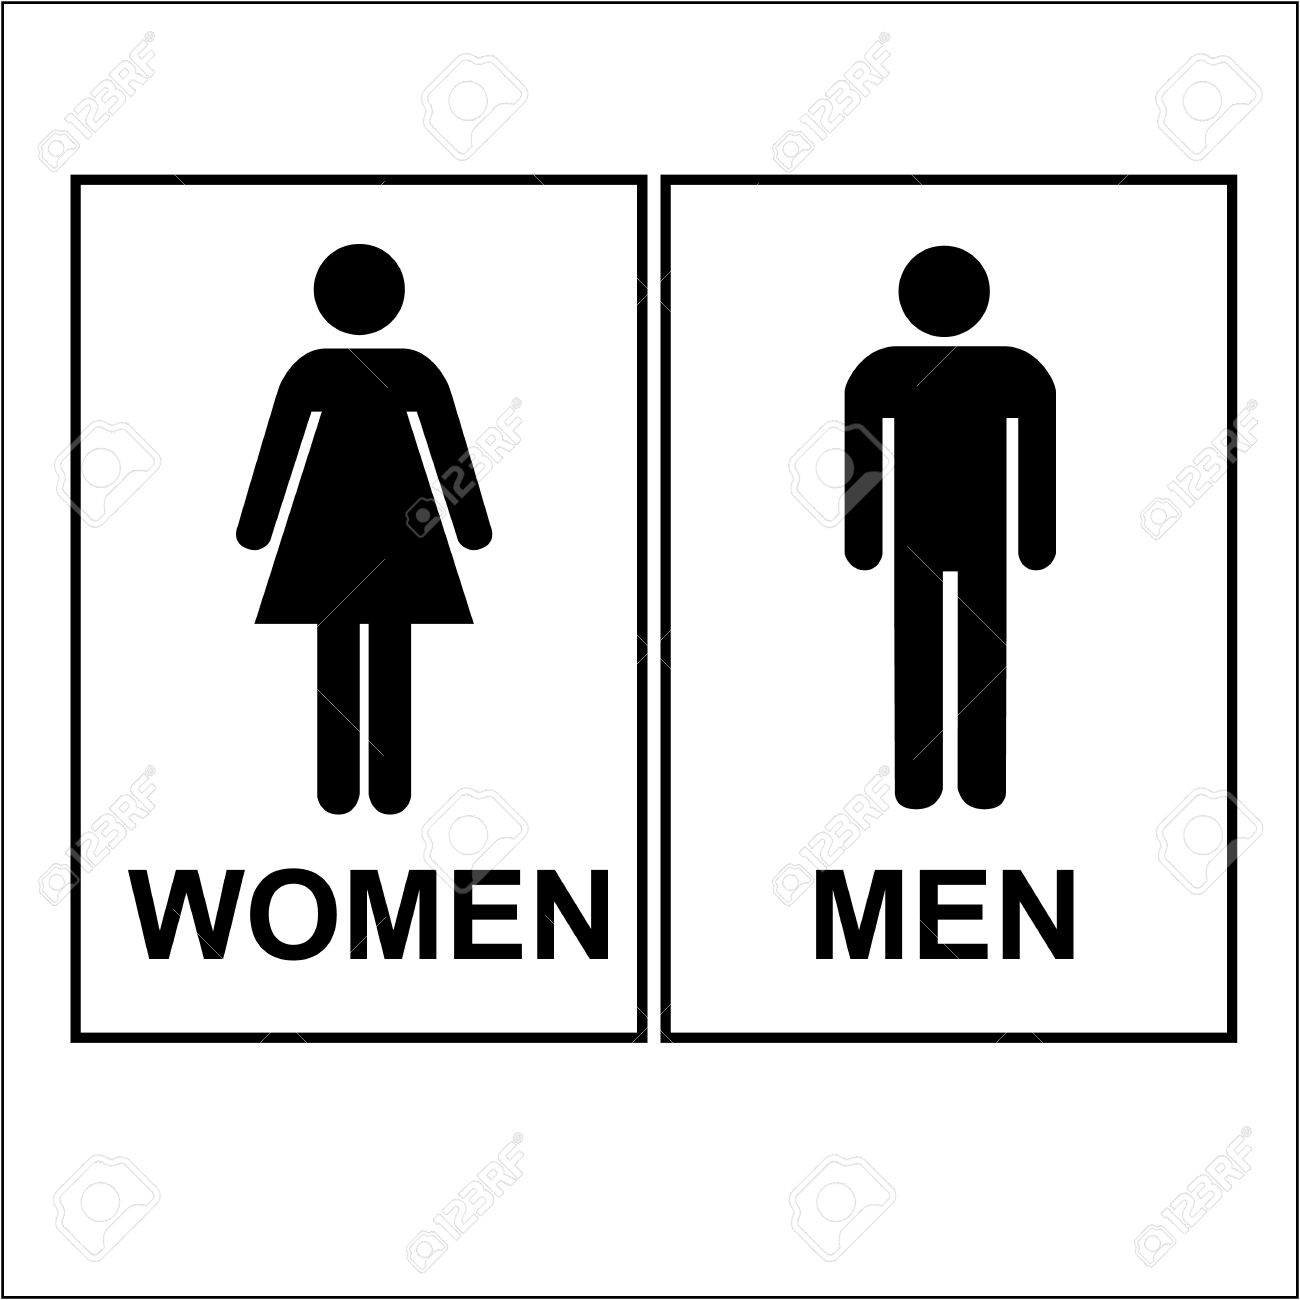 men s bathroom sign vector. Toilet Women And Men Sign Symbol Stock Vector - 42570530 S Bathroom N